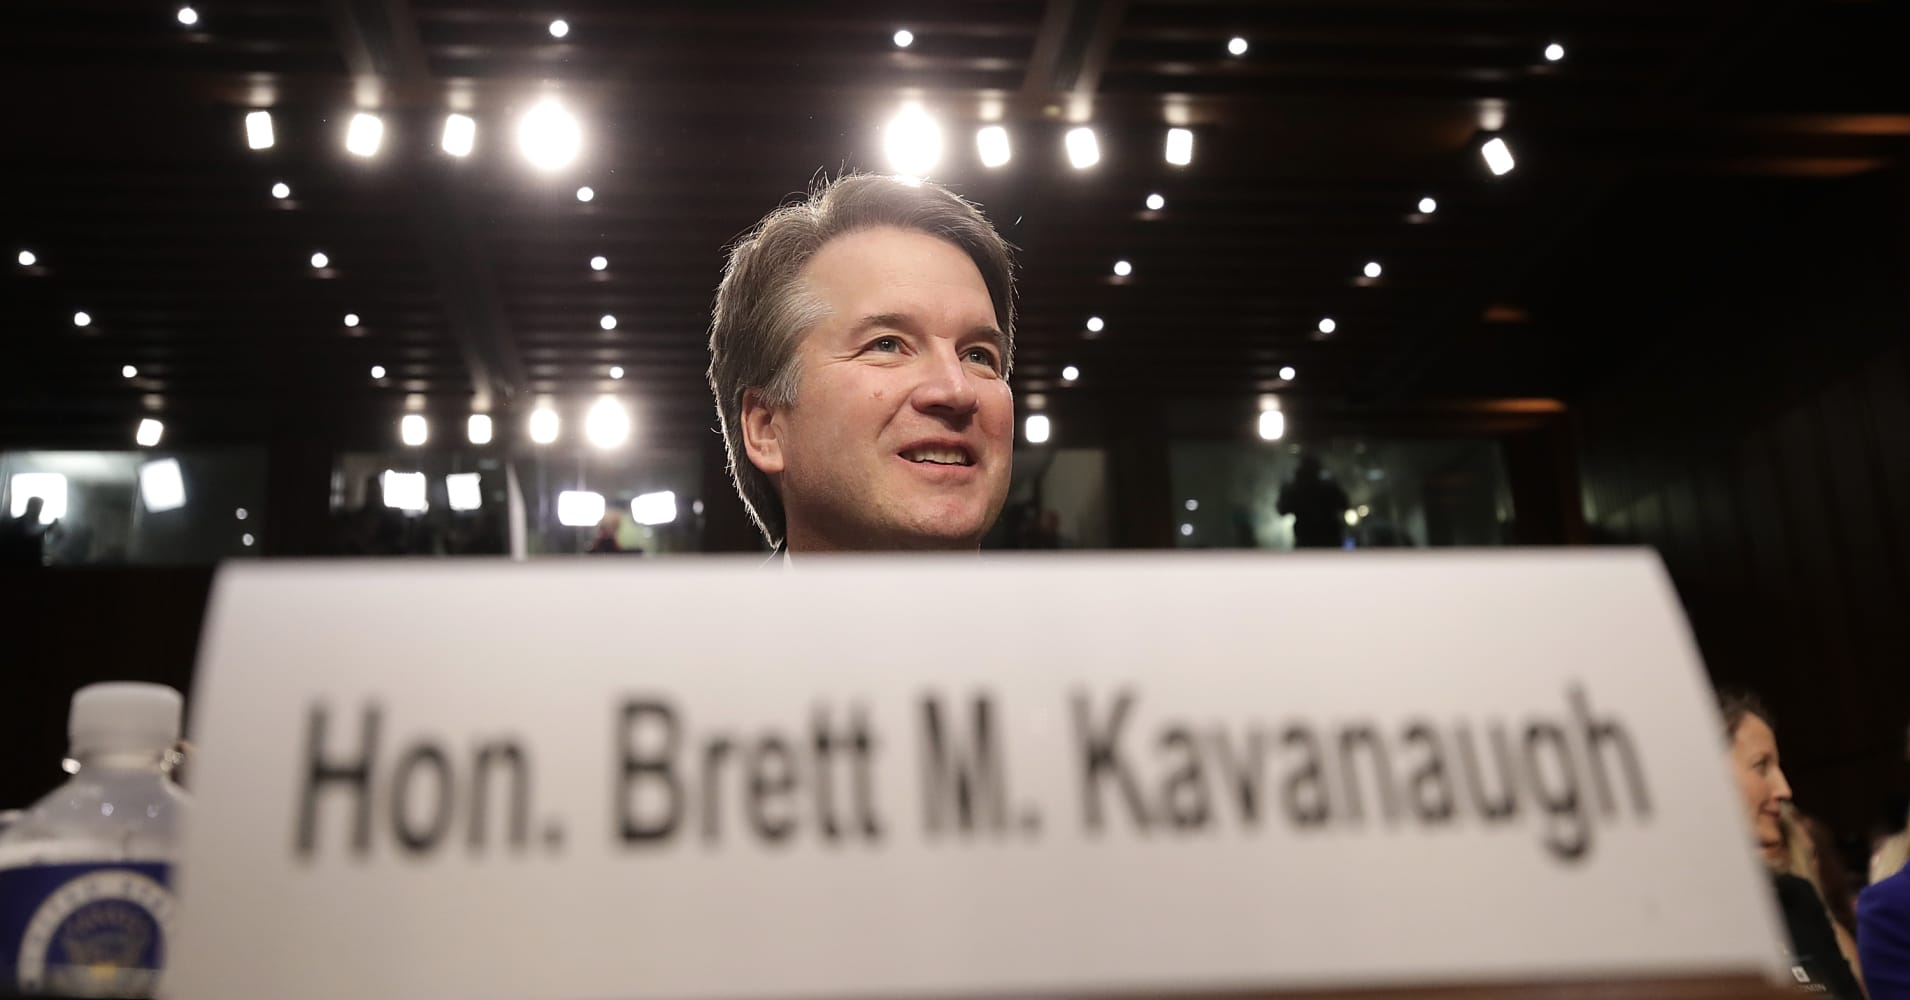 Watch: Confirmation hearings begin for Trump Supreme Court nominee Brett Kavanaugh